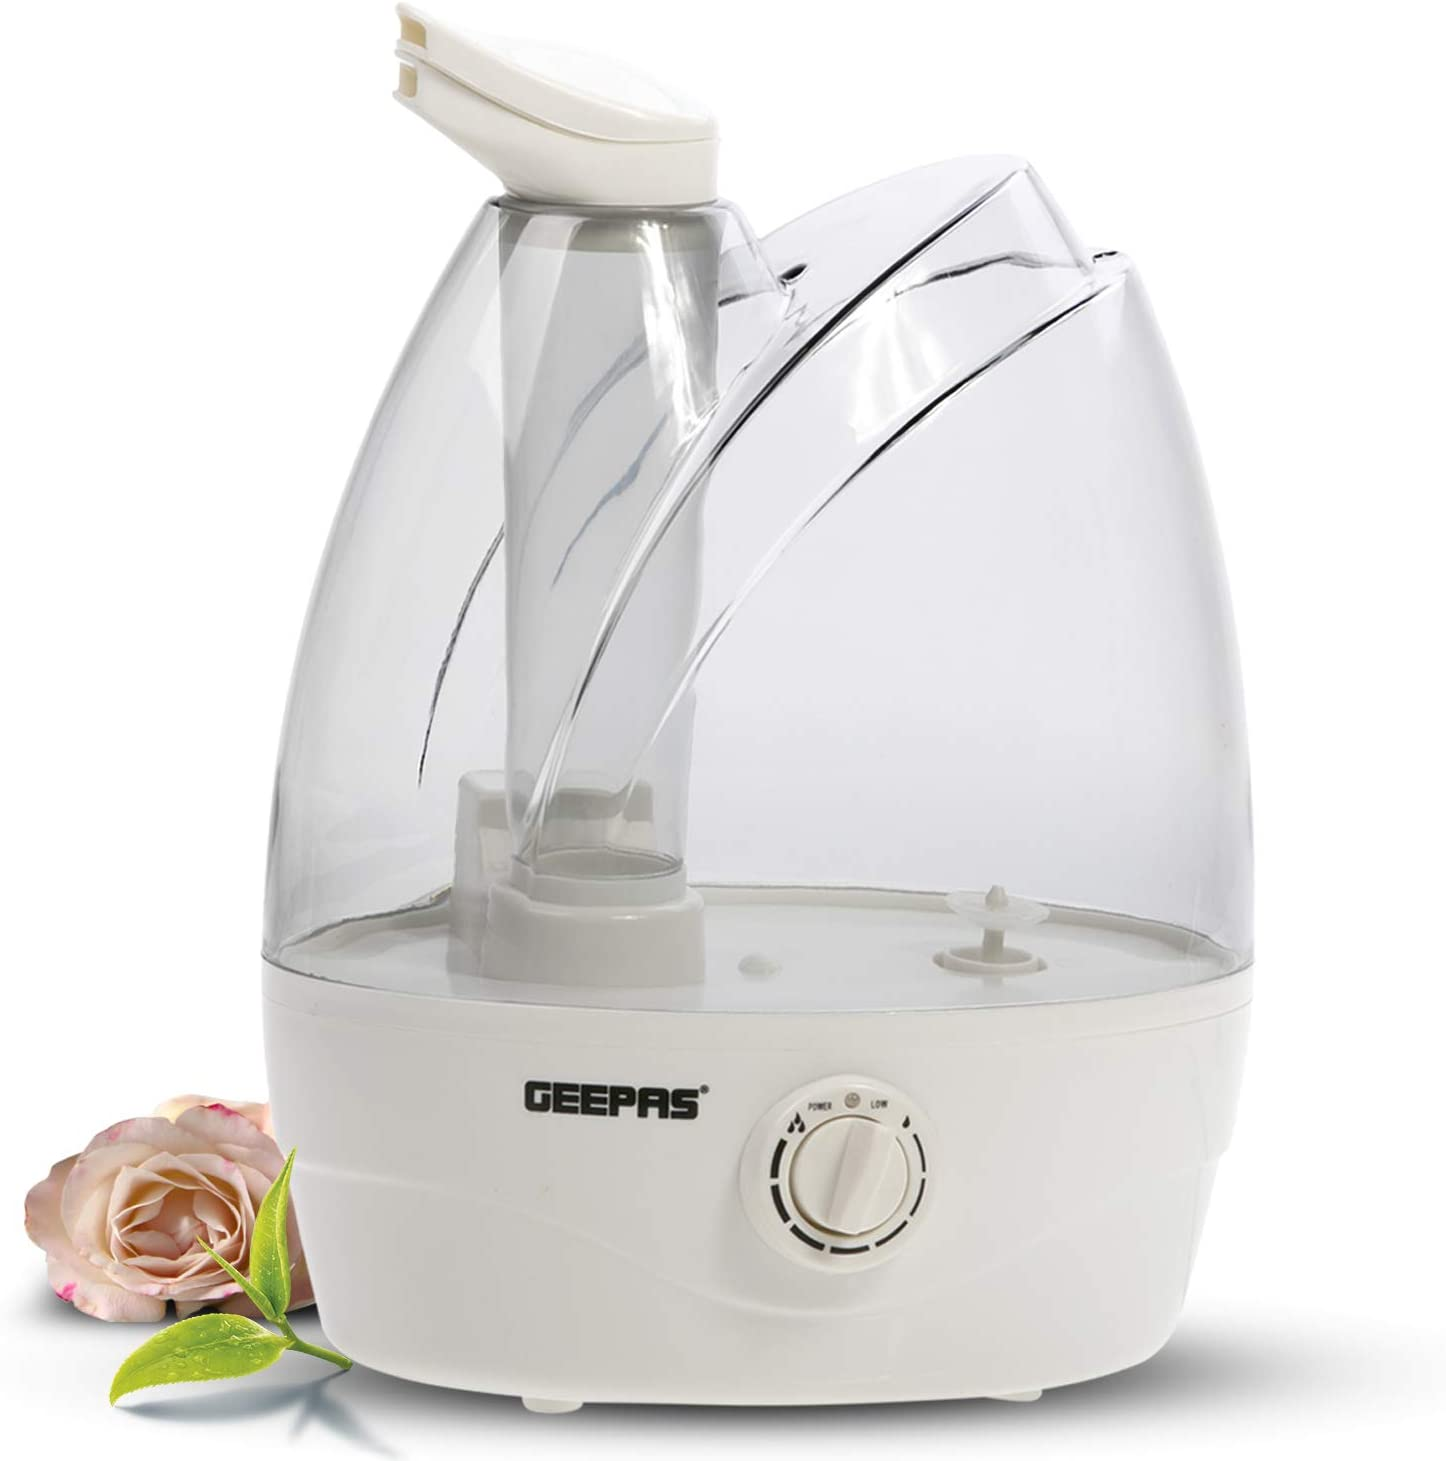 Geepas 32W Humidifier | Double Nozzle, 9 Hours of Continuous